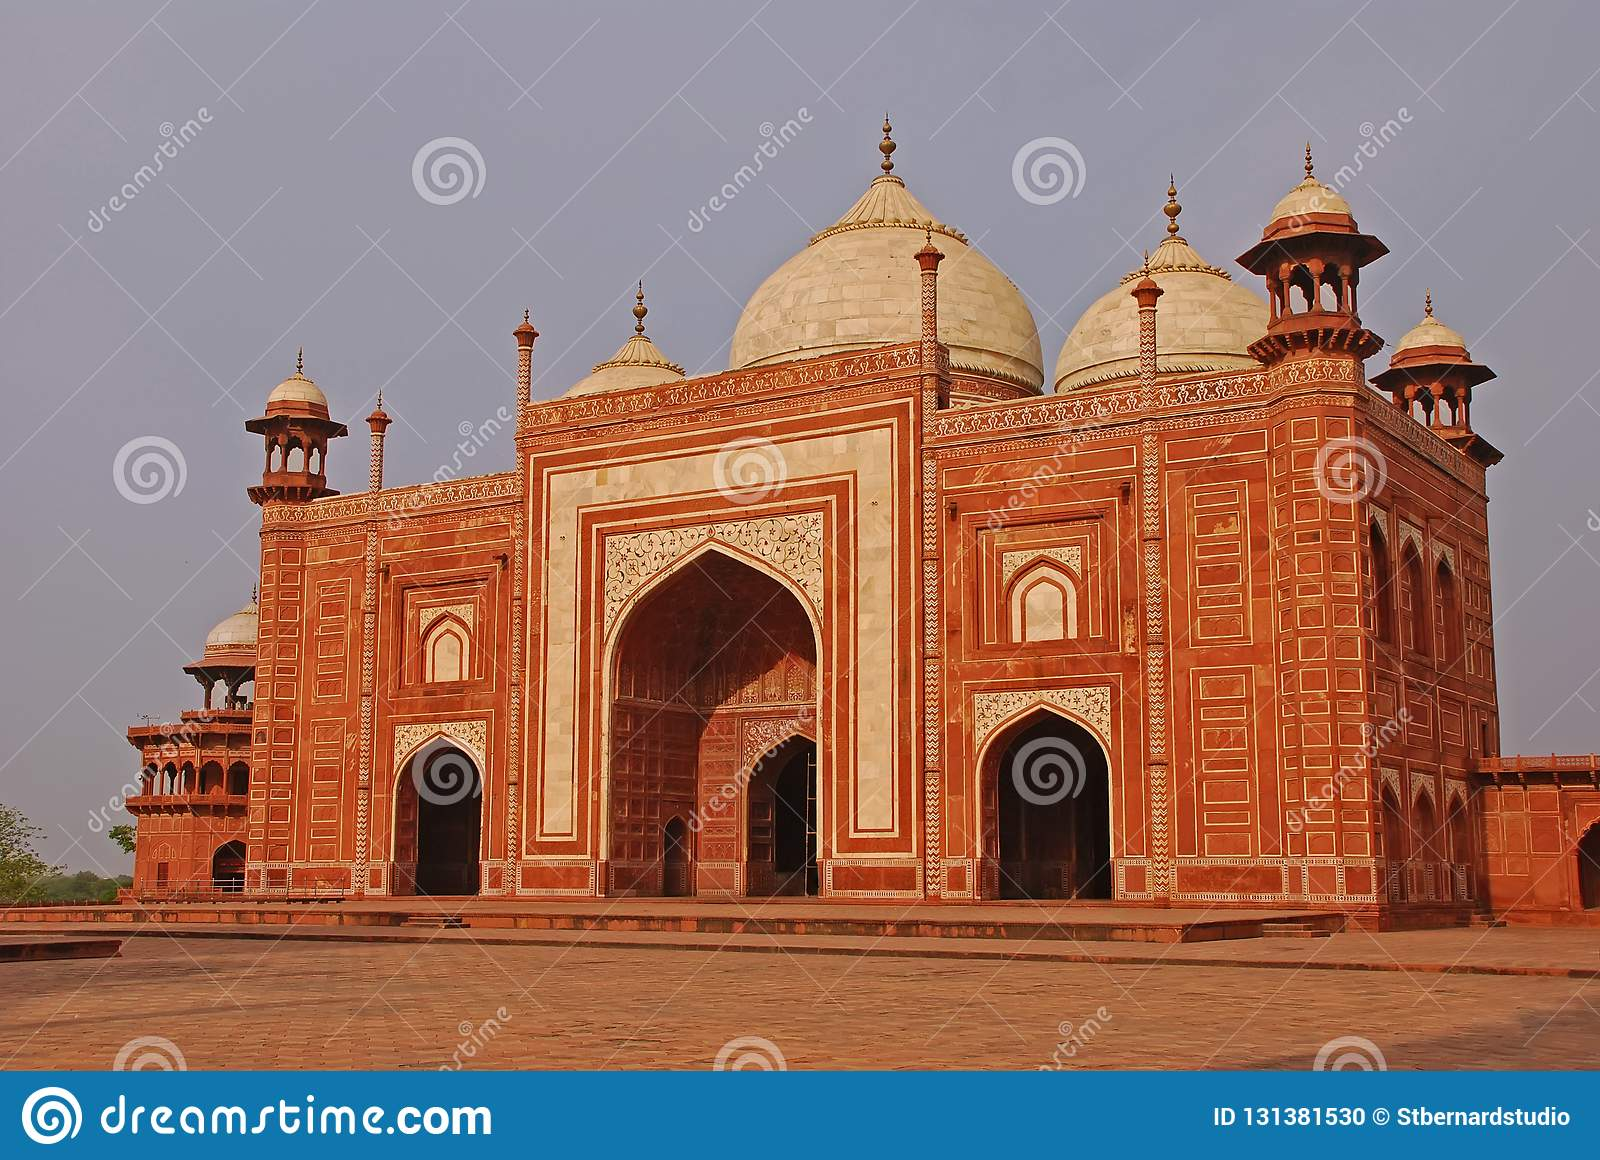 This orange colour structure is the outlying building in the Taj Mahal complex, Agra India